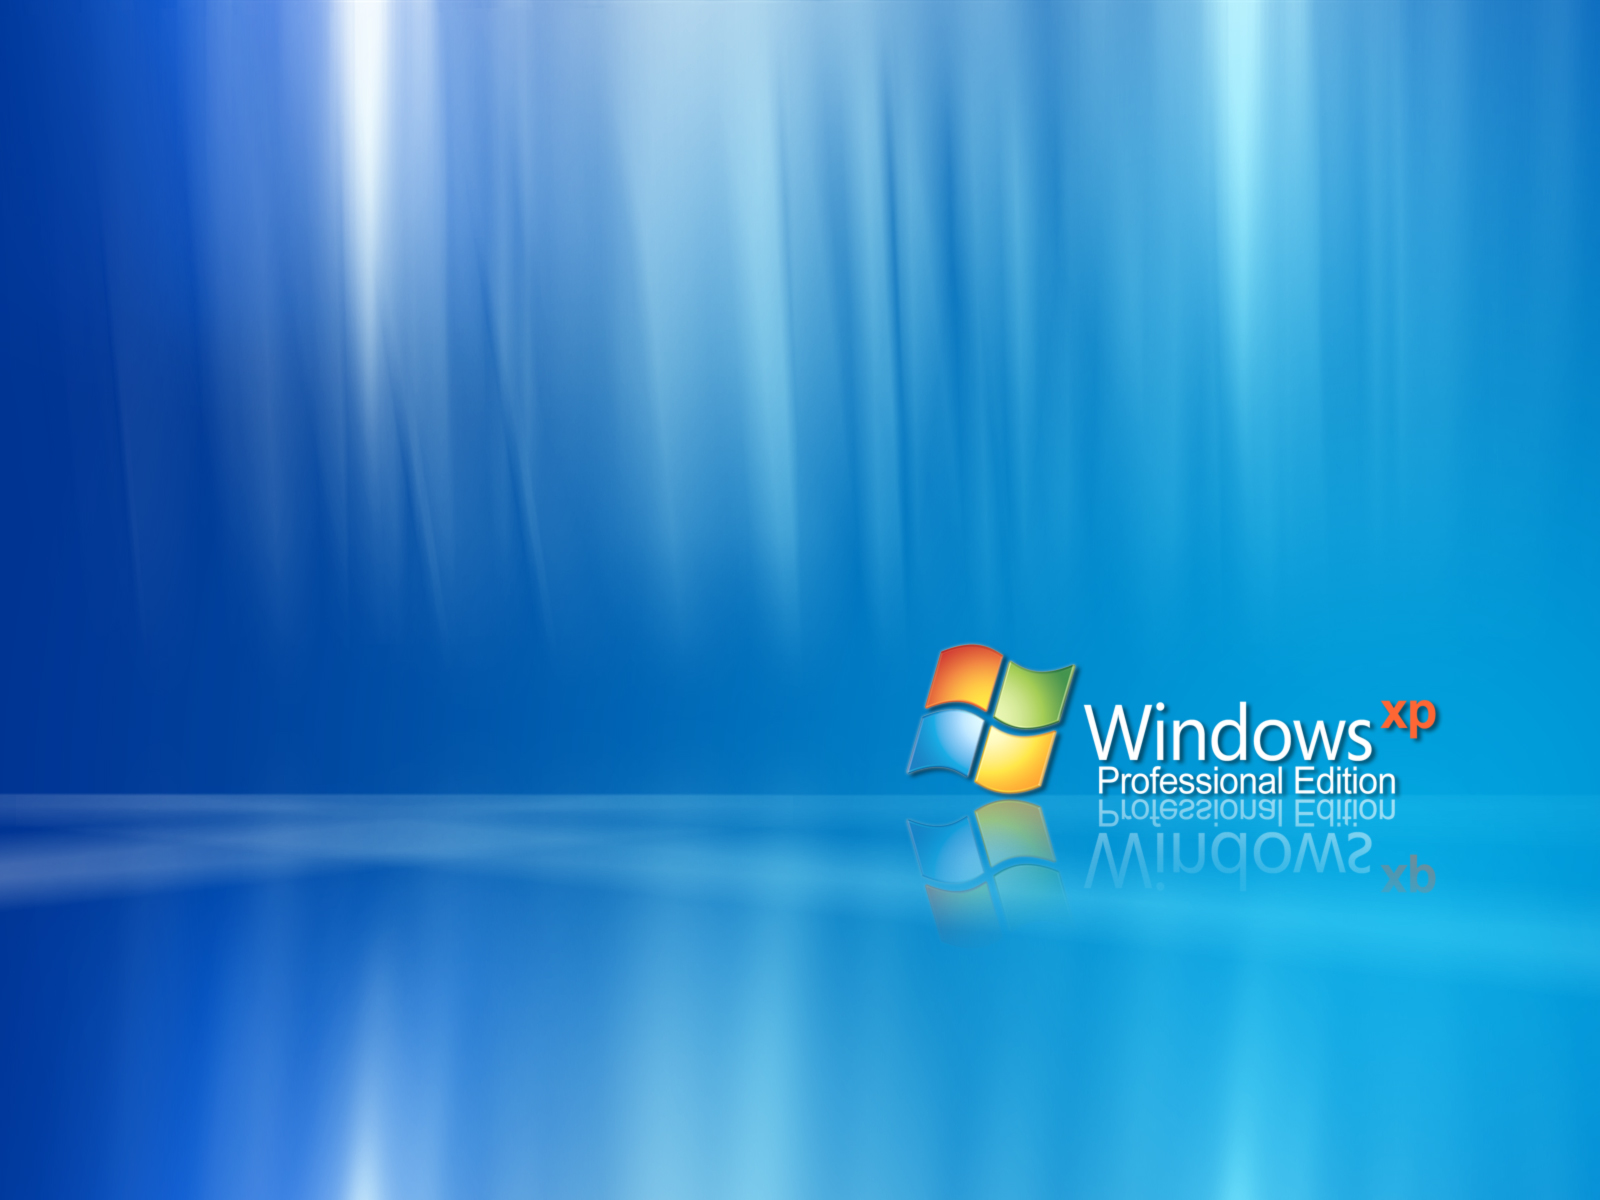 Download XP Wallpaper